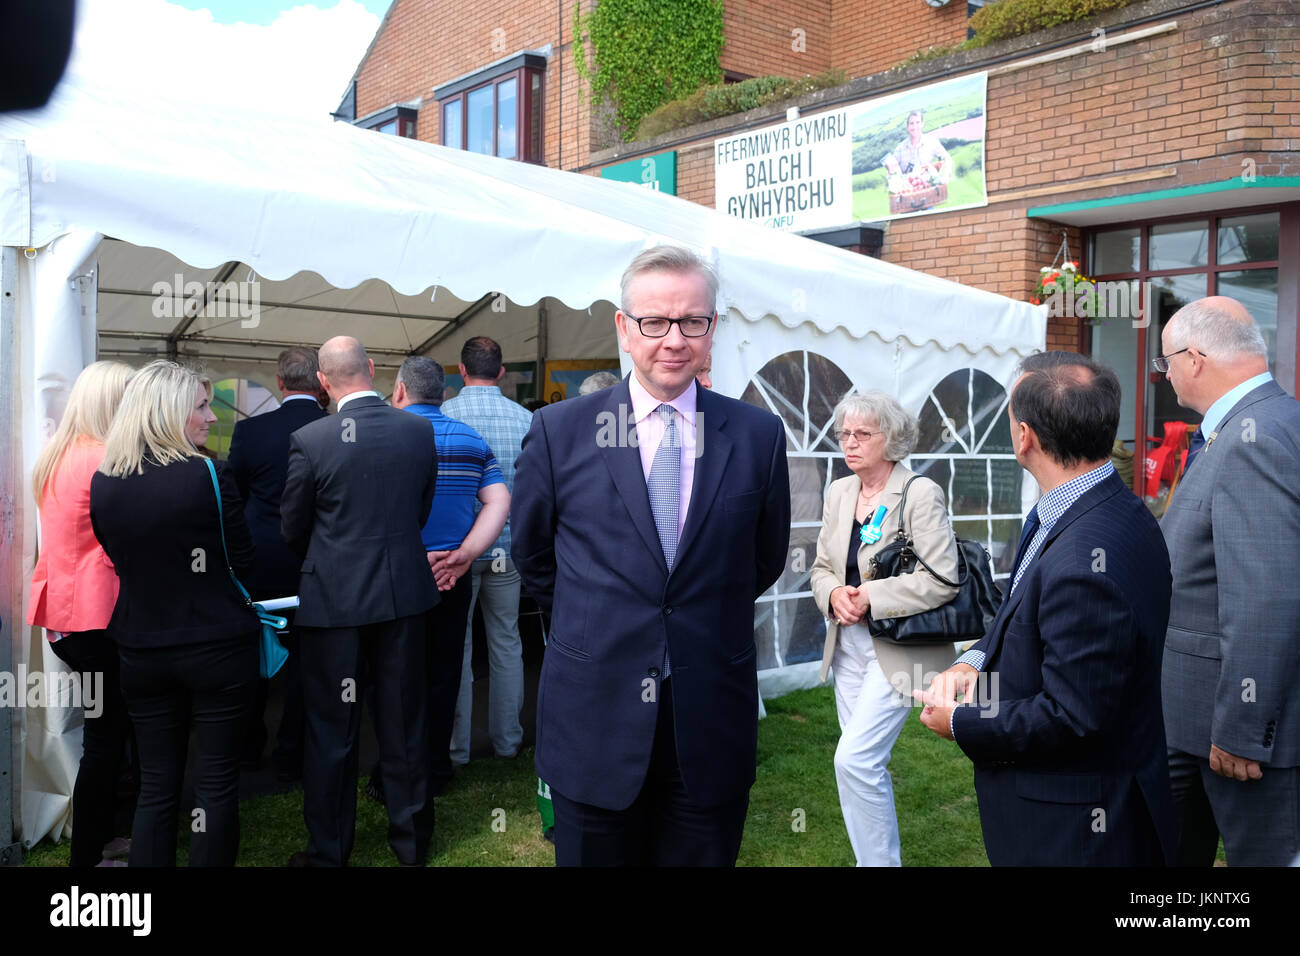 Royal Welsh Show - Monday 24th July 2017 - Michael Gove Secretary of State for Environment, Food and Rural Affairs - Stock Image